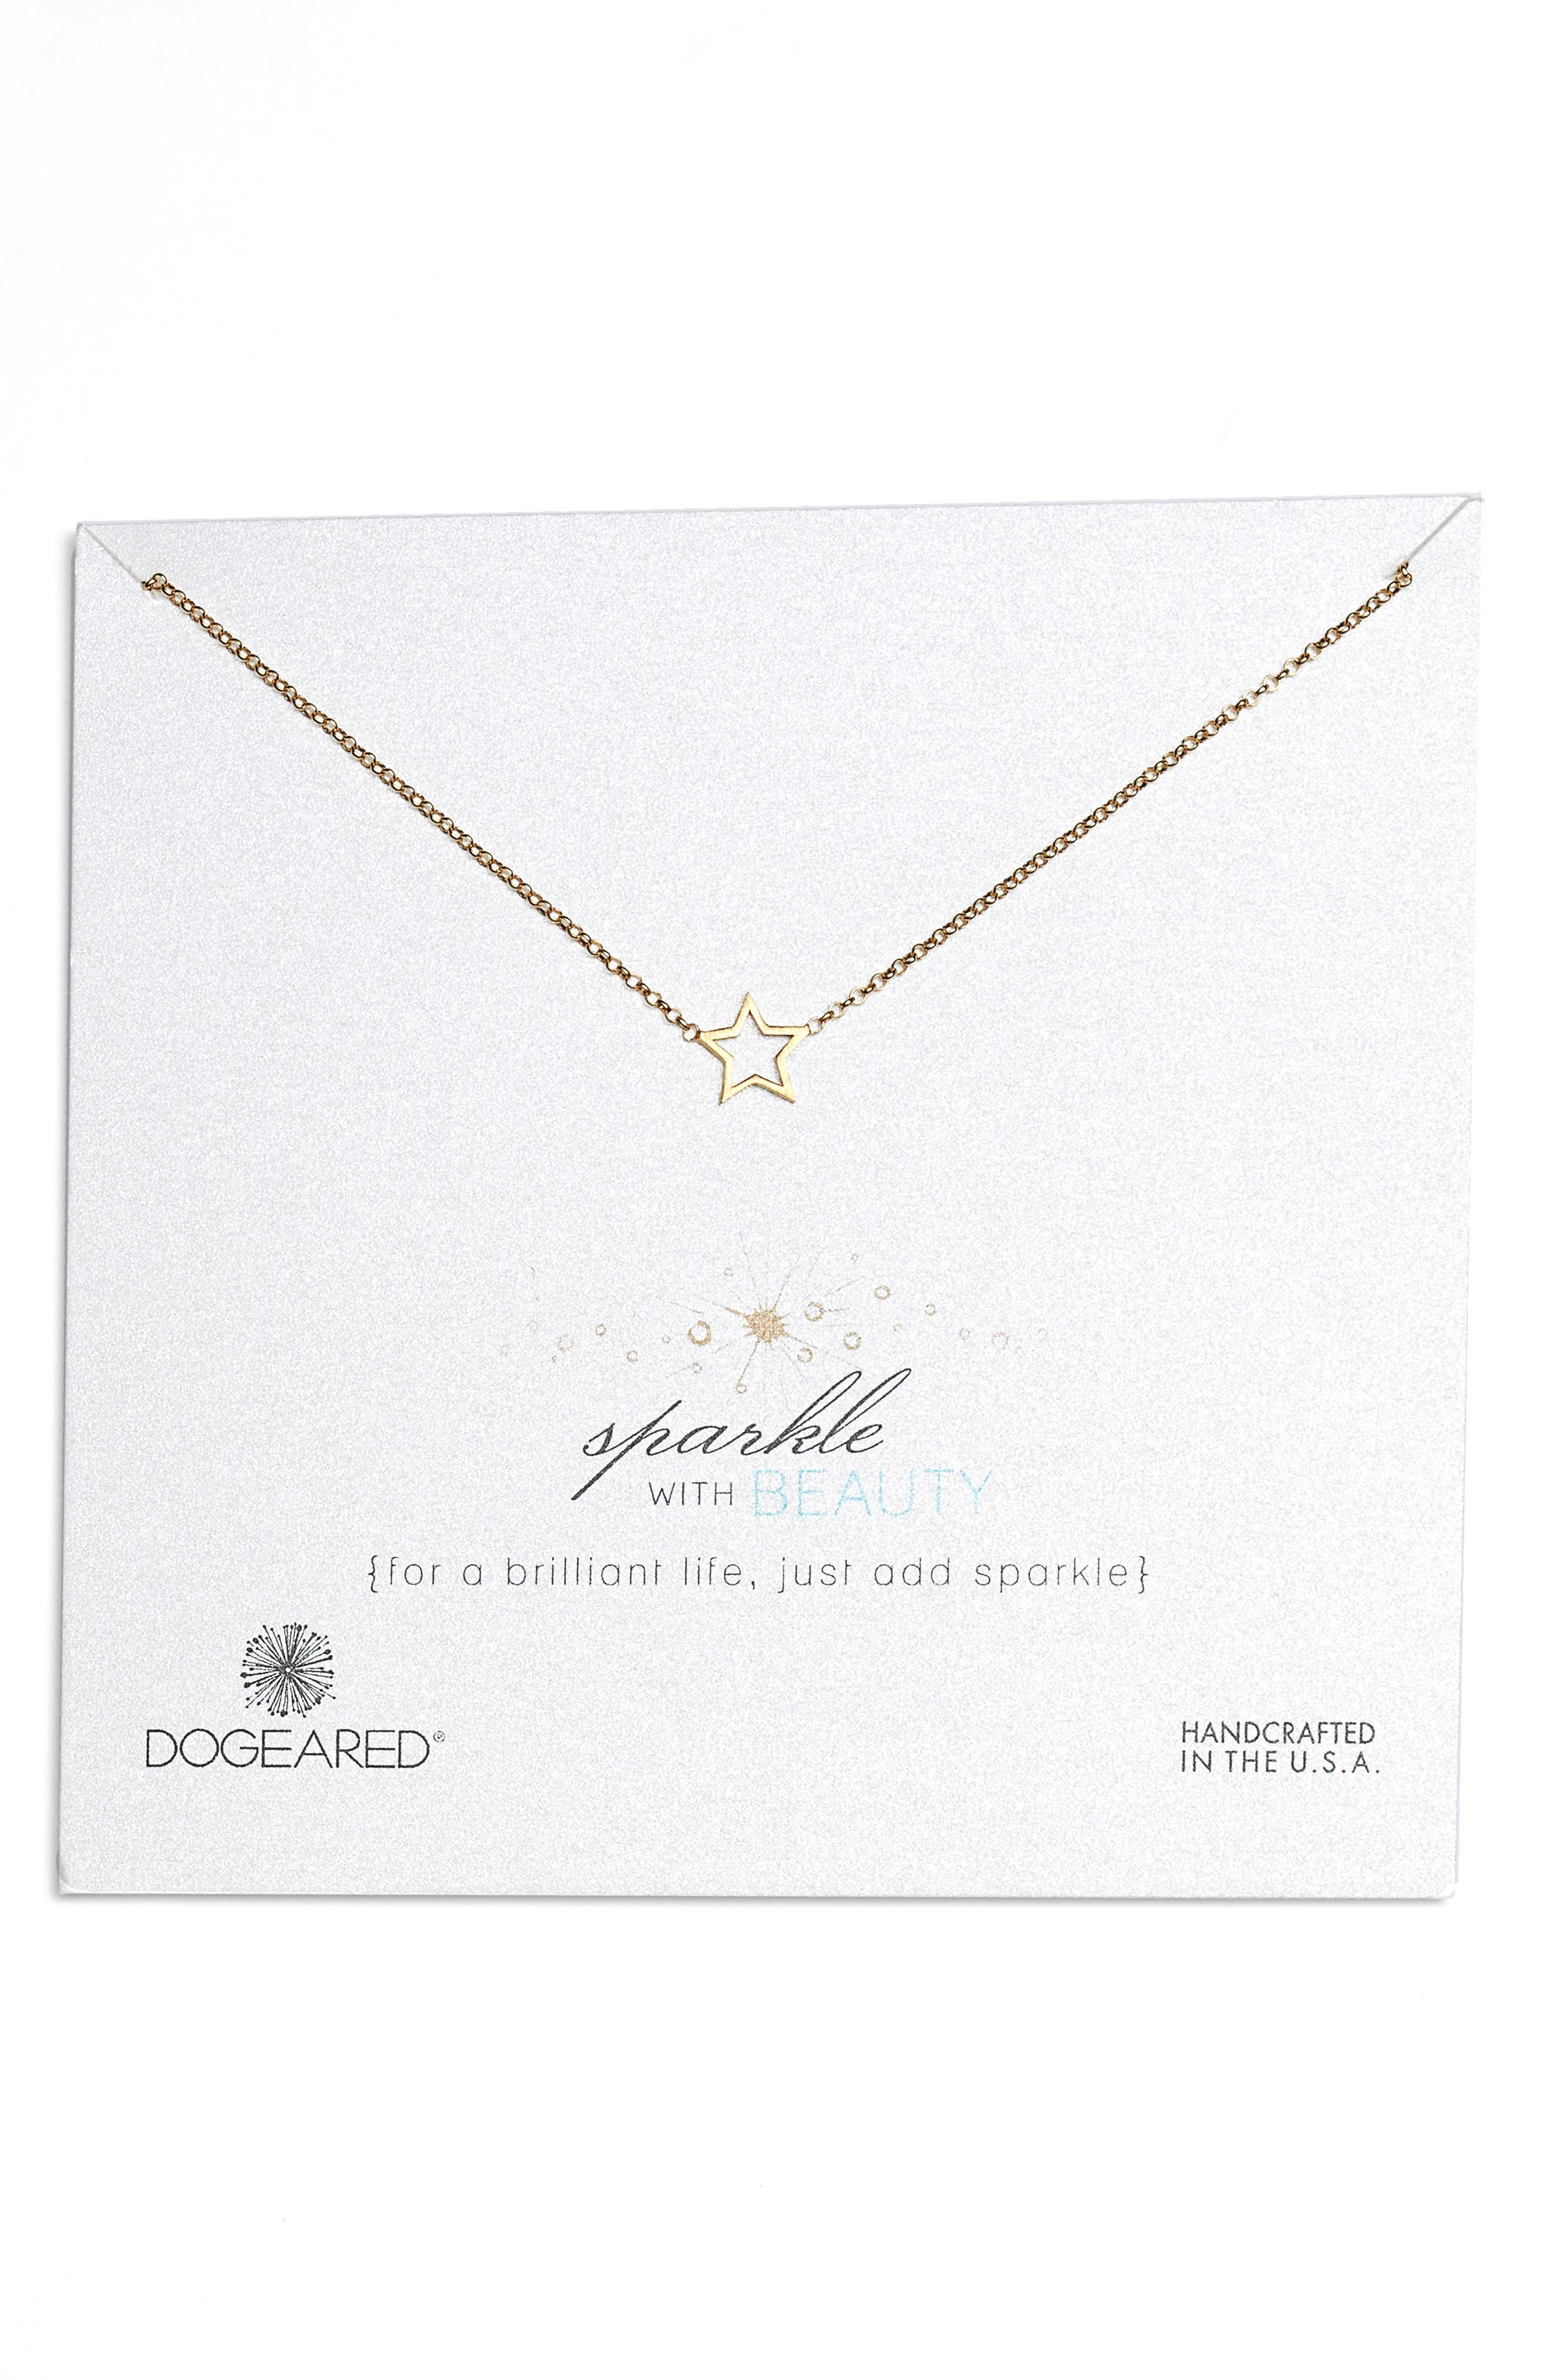 Sparkle with Beauty Necklace,                             Main thumbnail 1, color,                             710